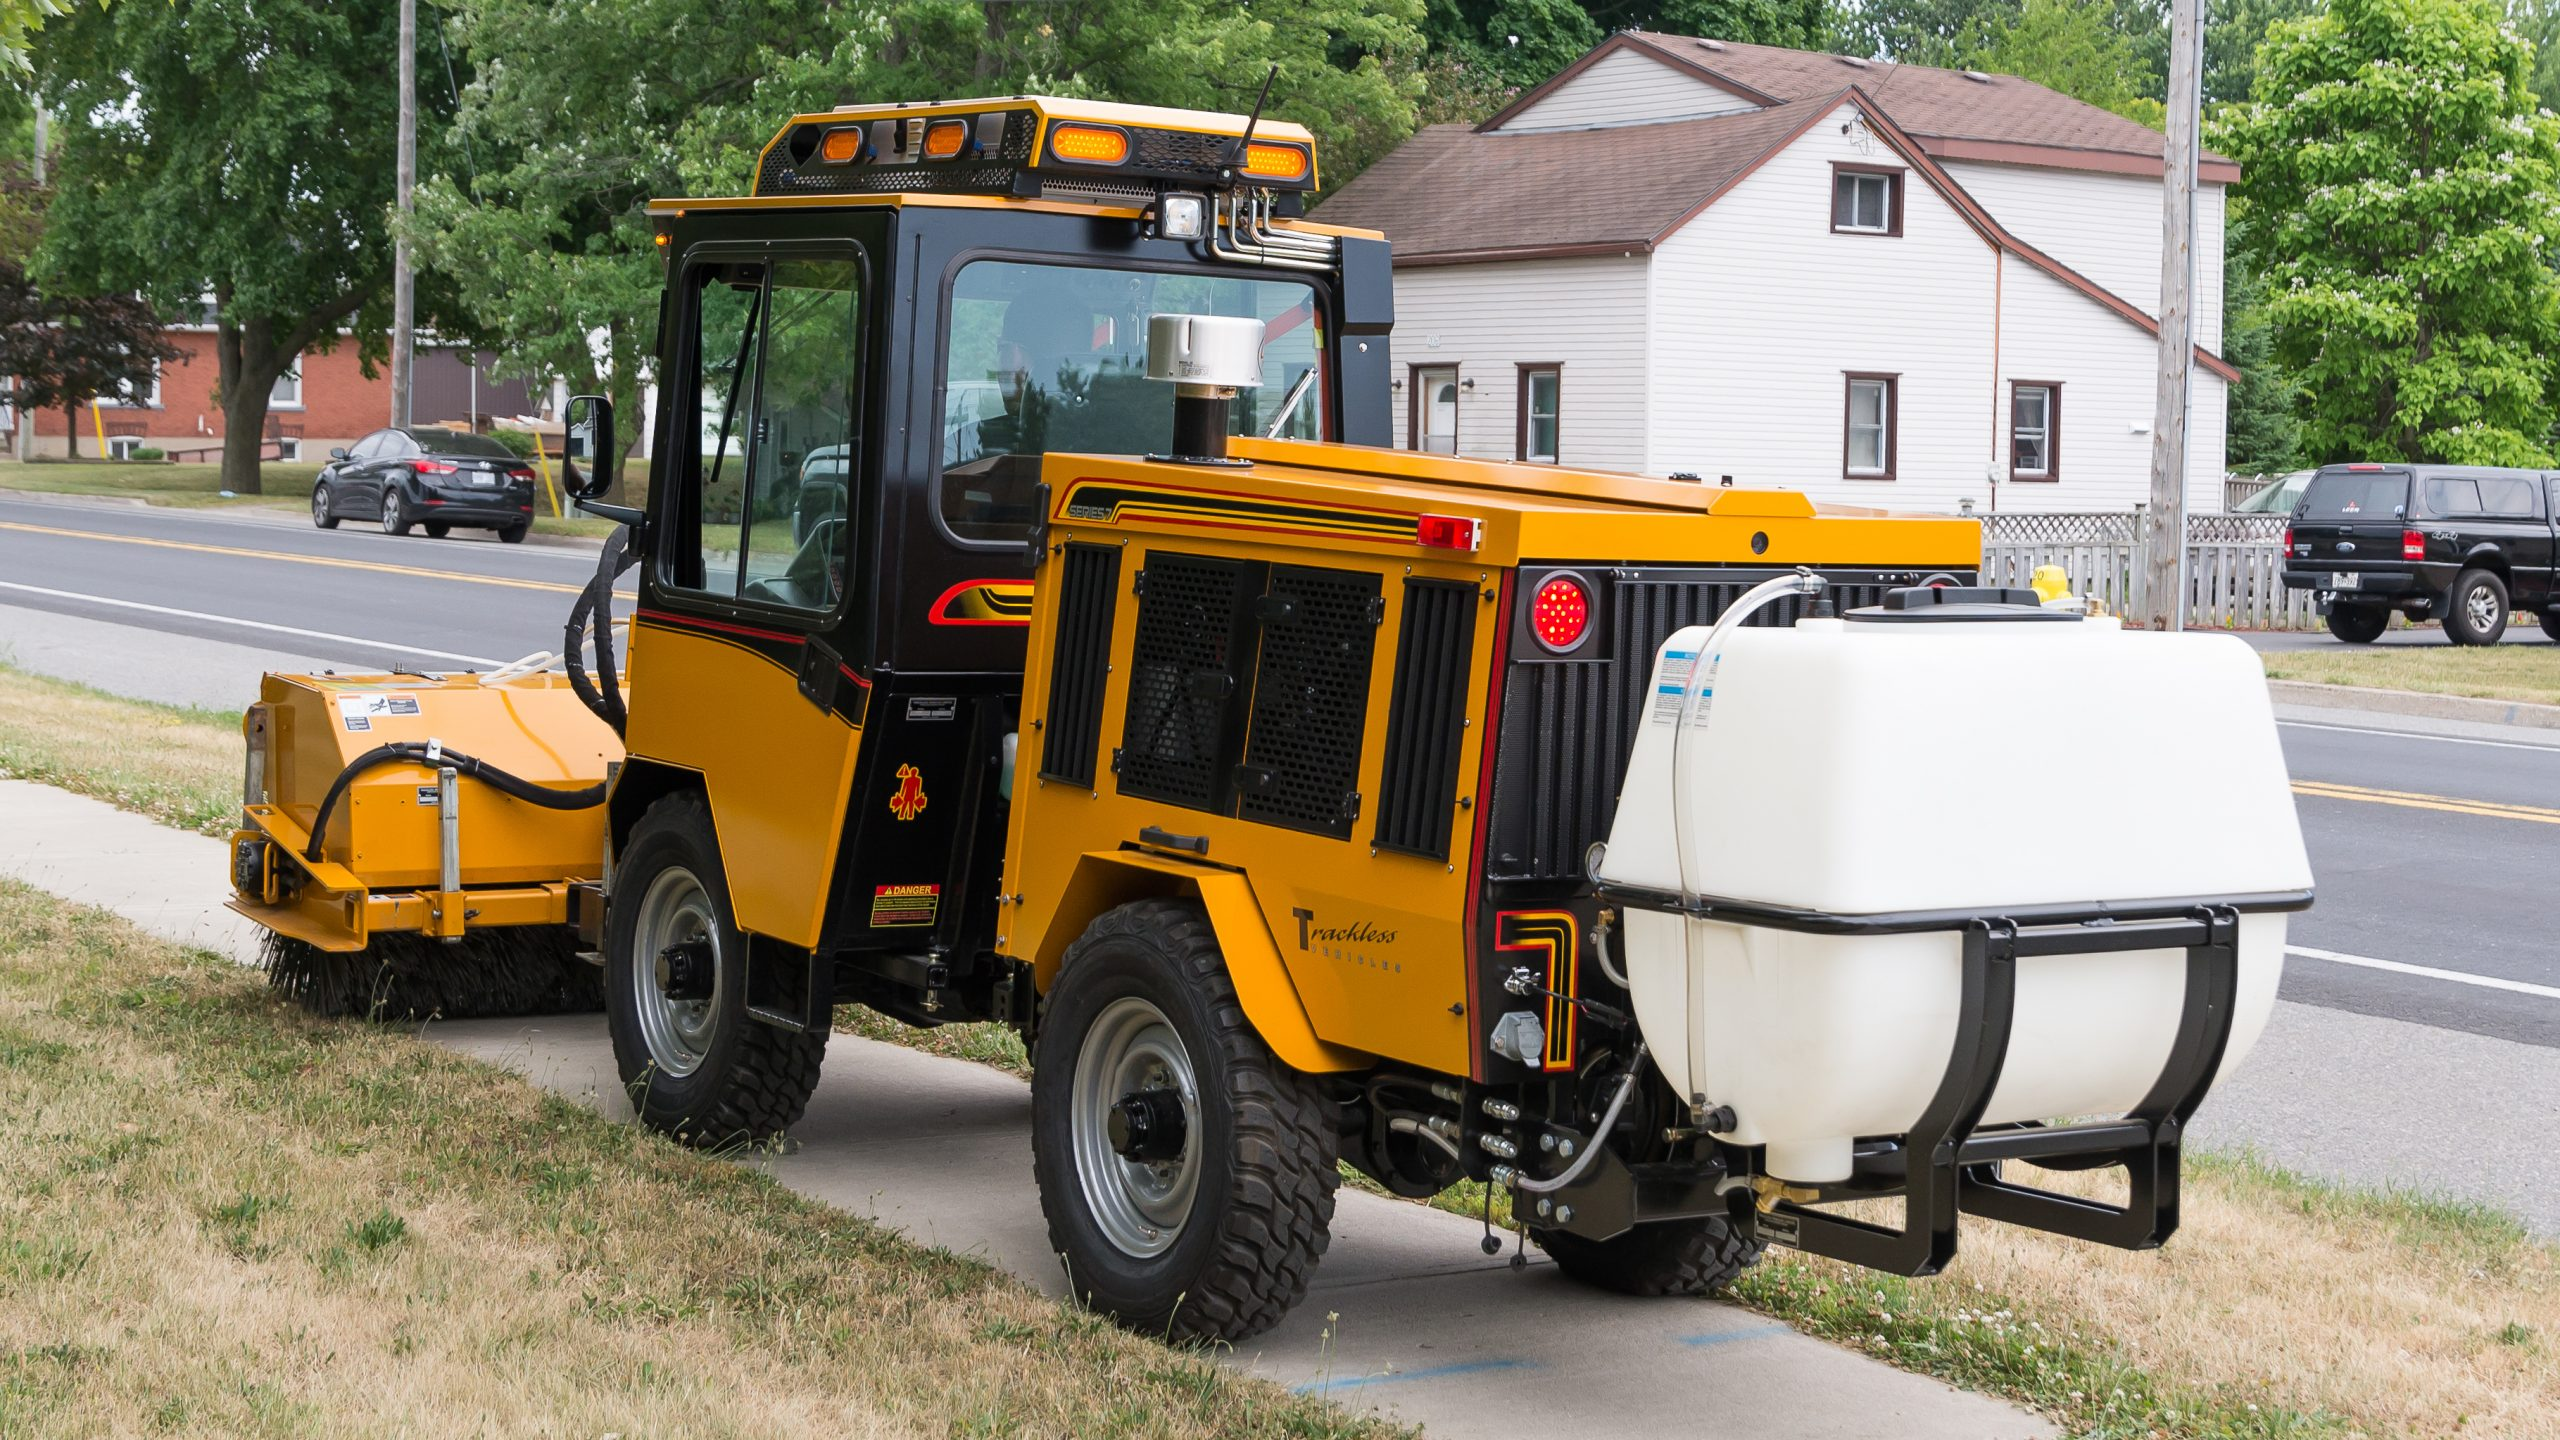 trackless vehicles water tank spraying system with power angle sweeper spray bar option